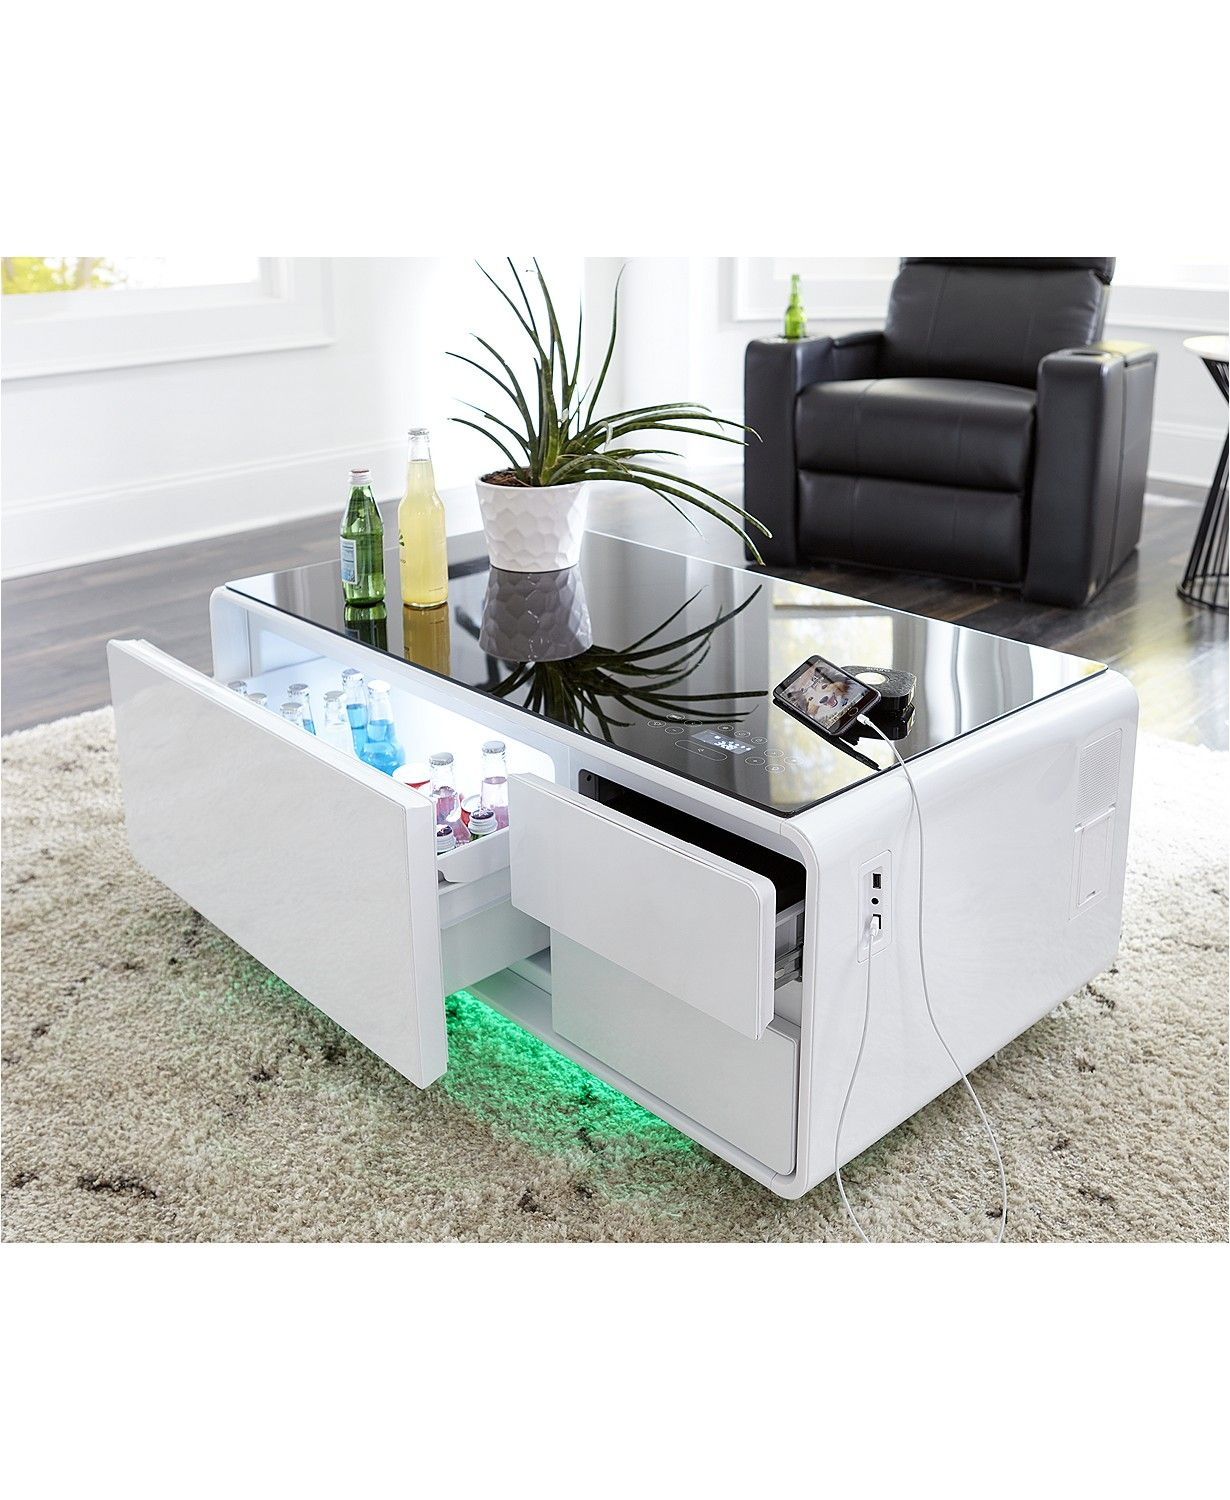 Sobro Smart Storage Coffee Table With Refrigerated Drawer Reviews Furniture Macy S Coffee Table With Storage Coffee Table With Fridge Smart Storage [ 1500 x 1230 Pixel ]